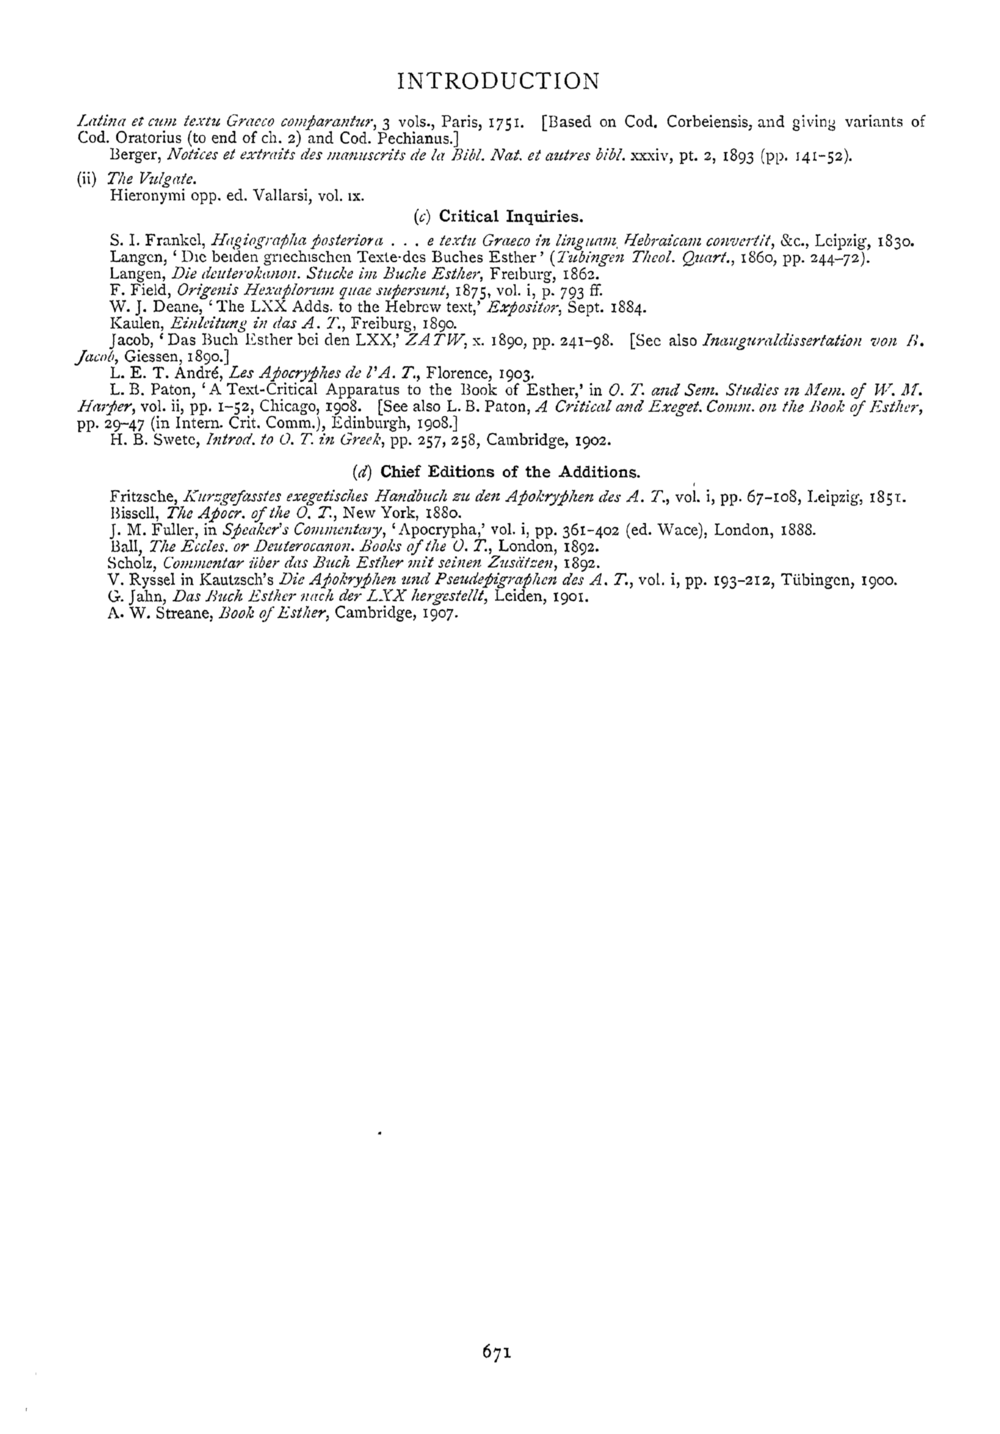 Image of page 671